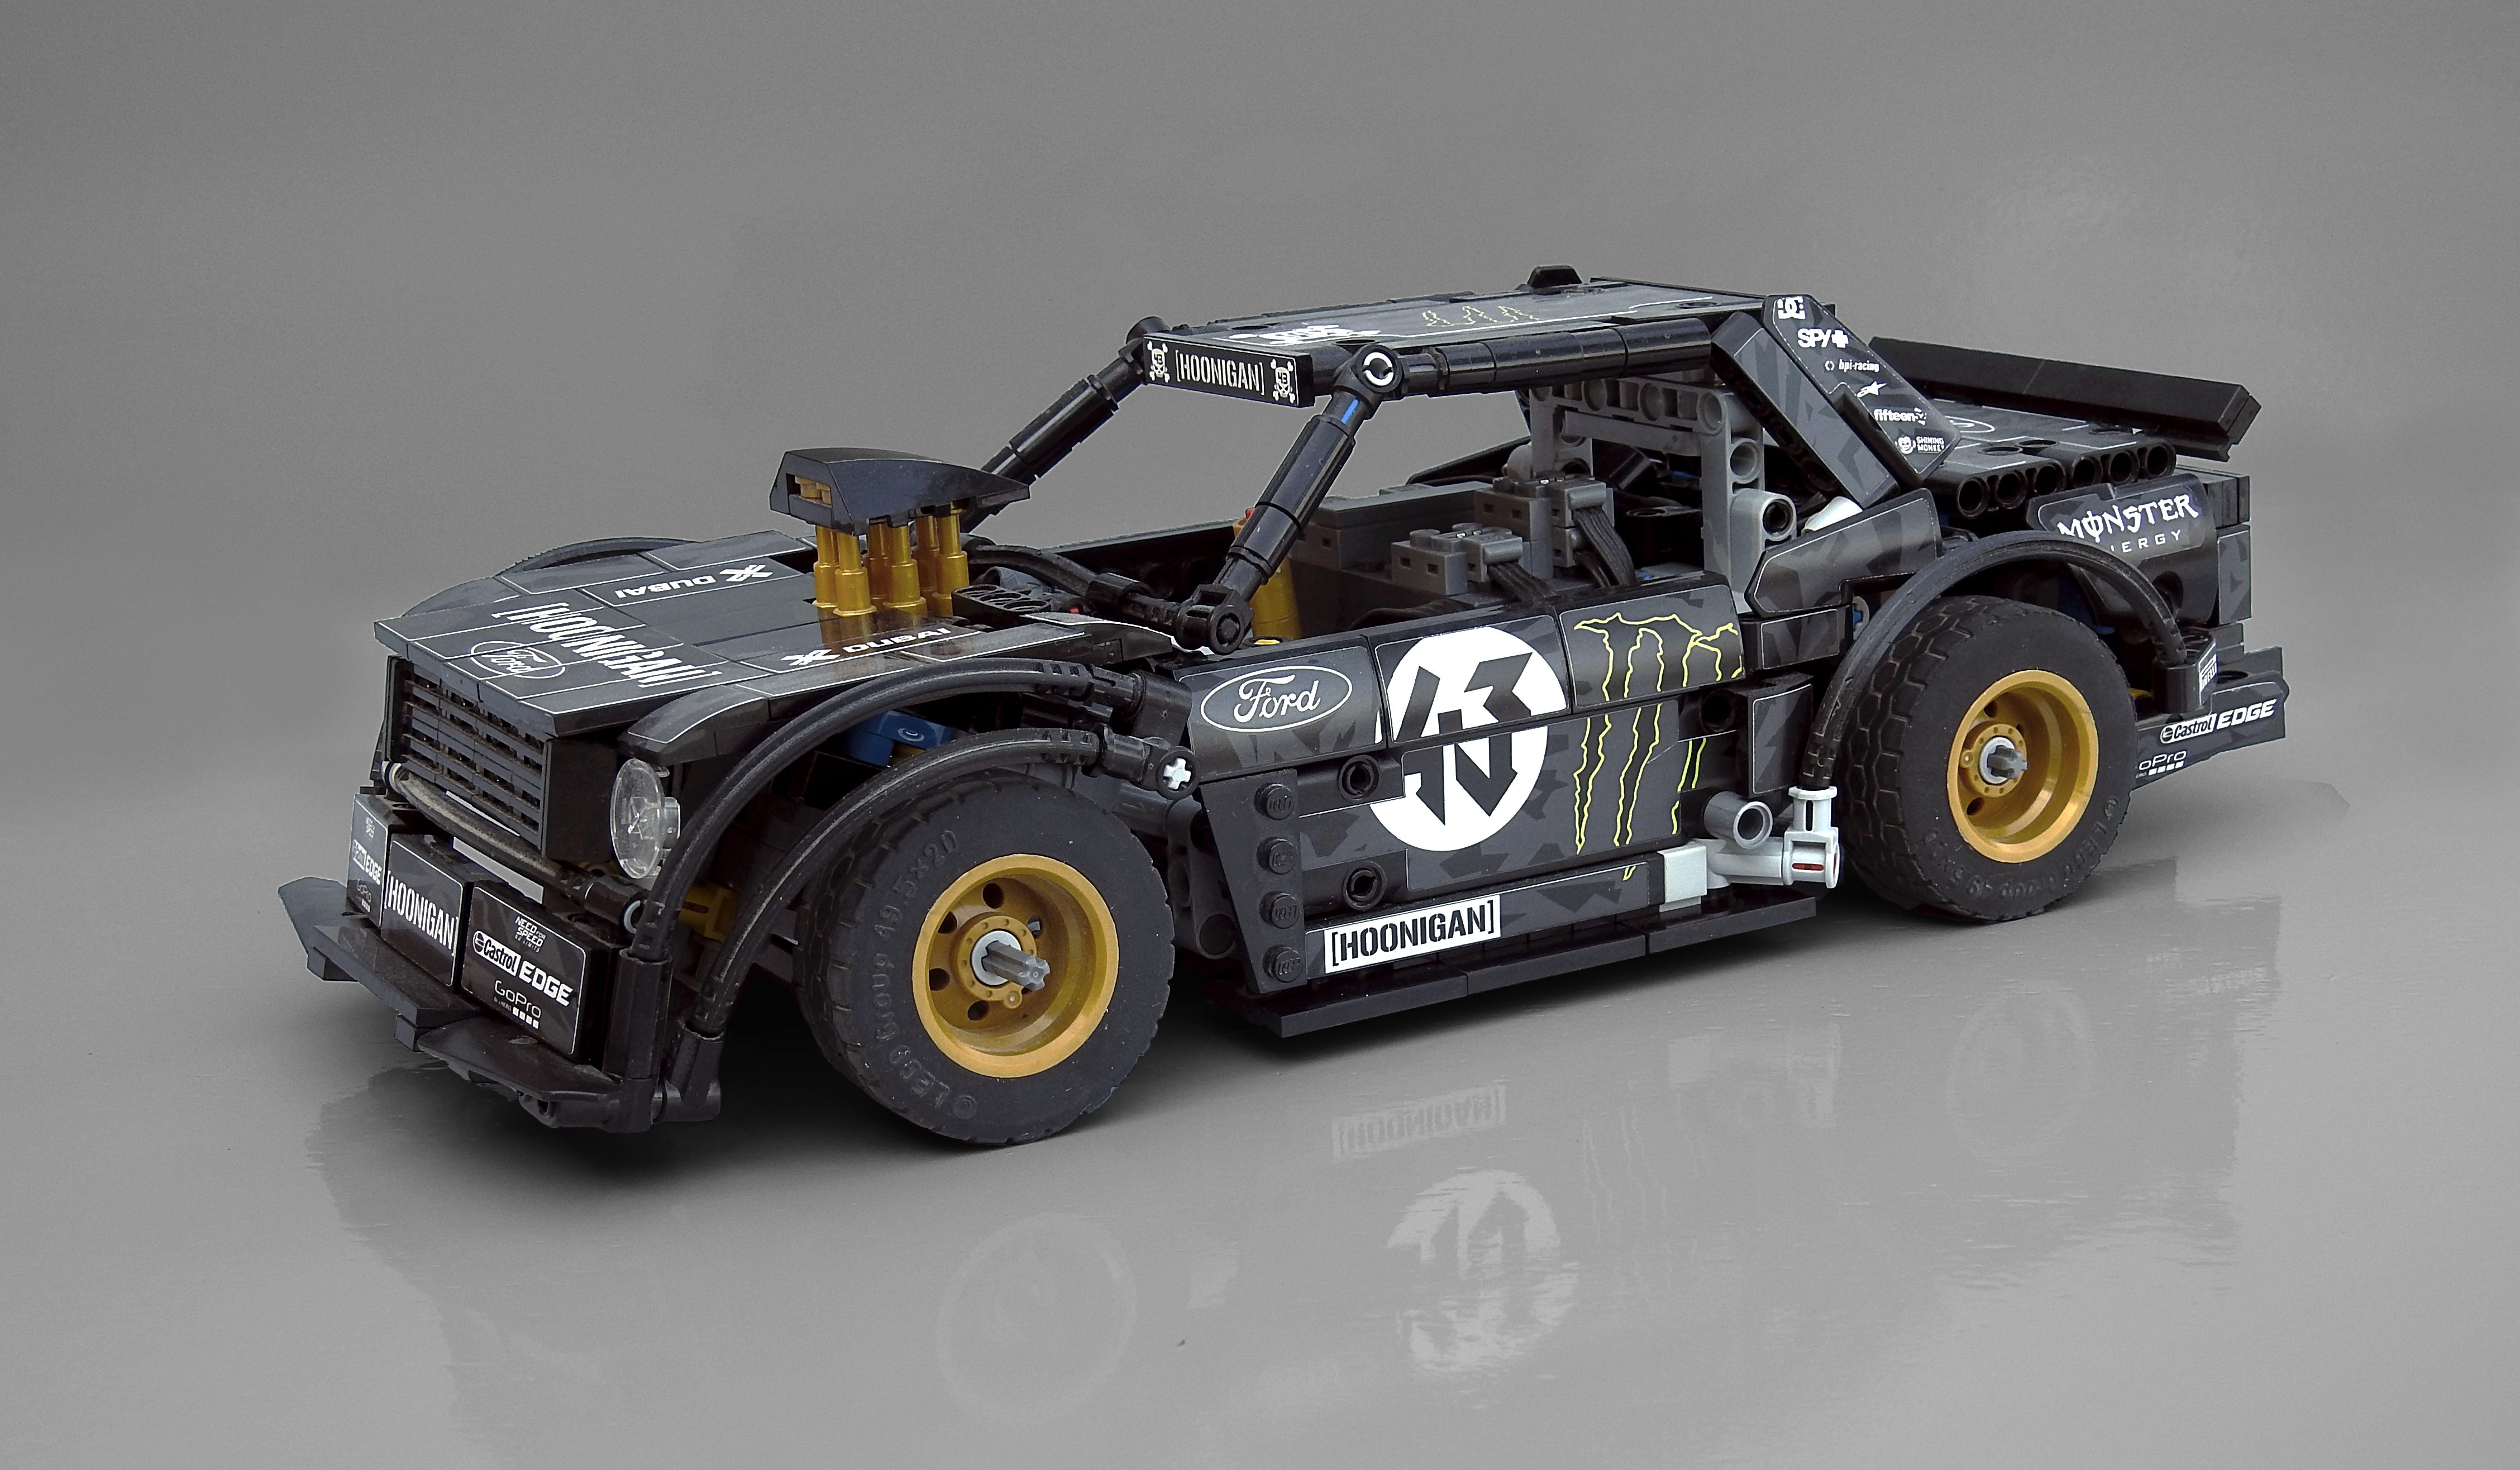 How Much Is The Hoonigan Mustang Worth